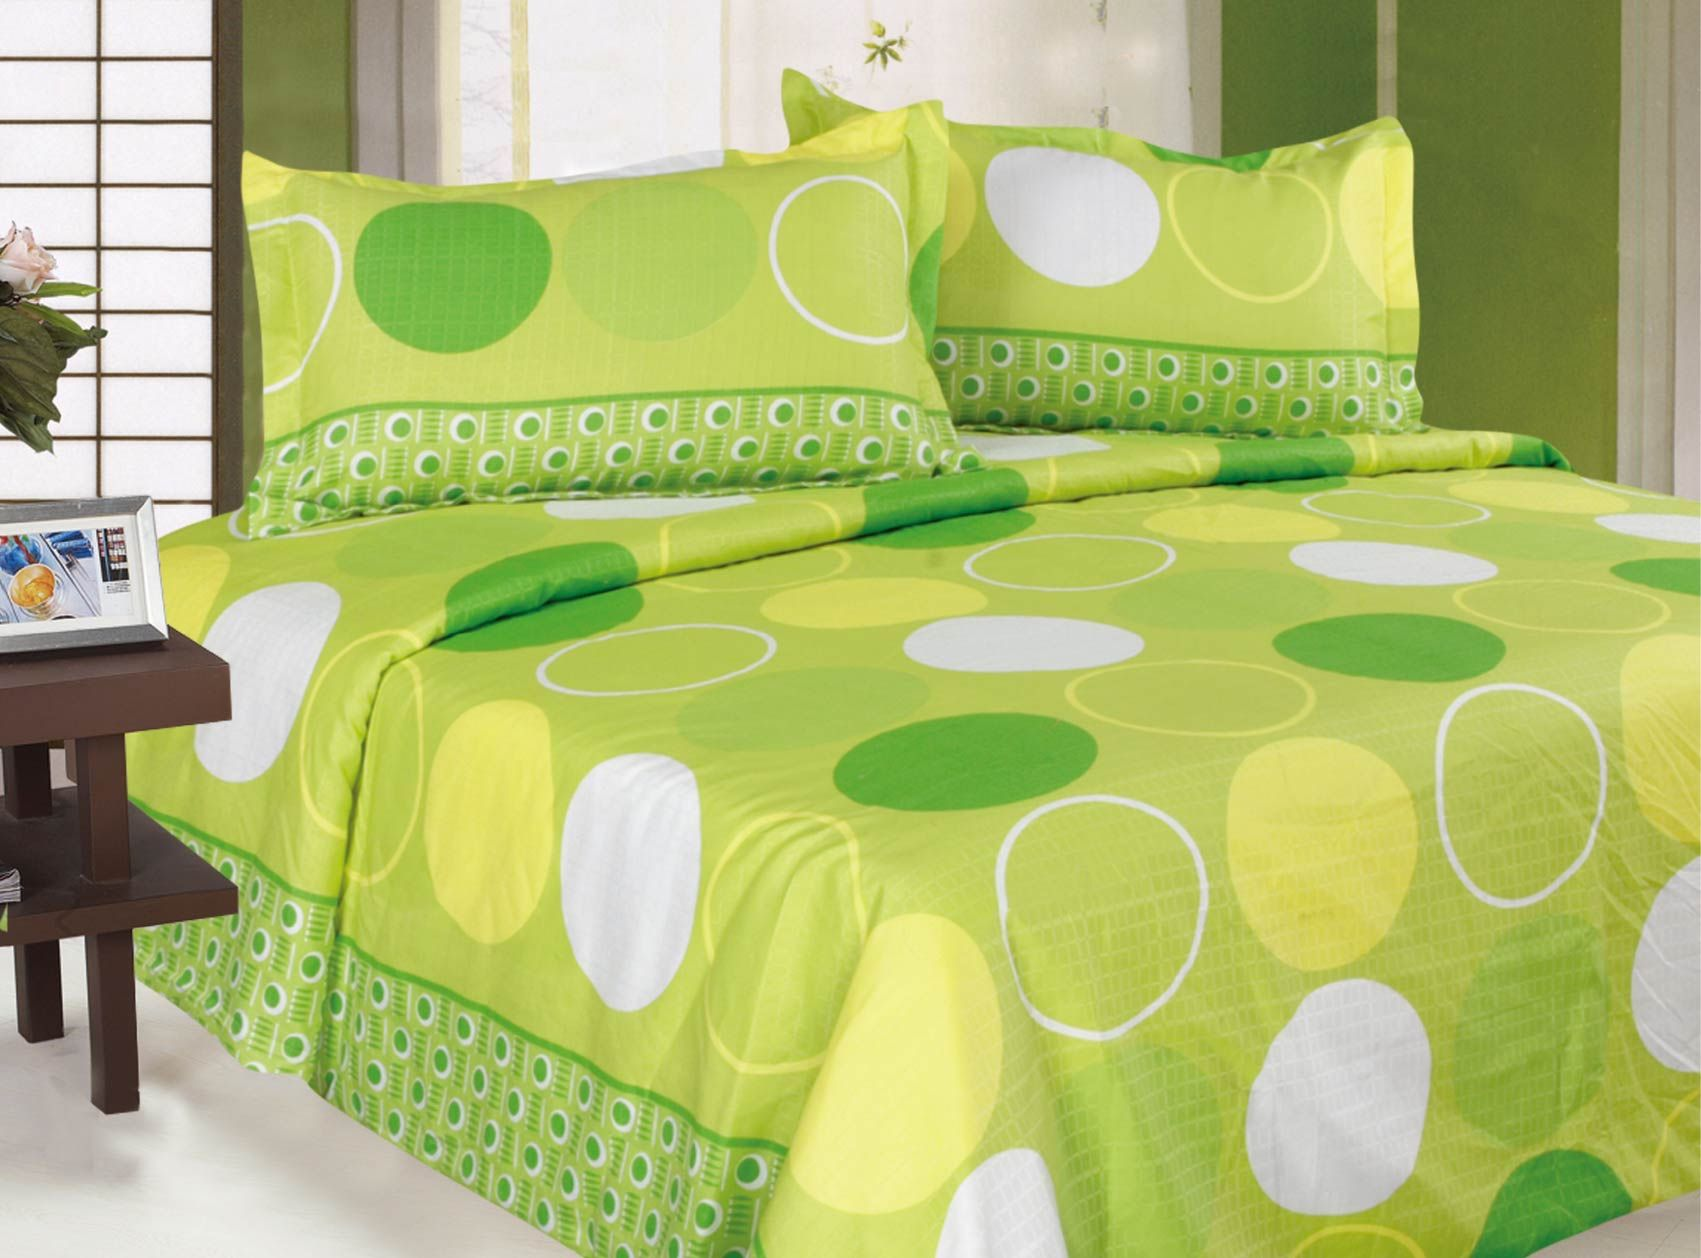 Bed sheets with price - Discovering Best Bed Sheets Sale Unbelievable Bed Sheets With Dreaded Bedding For Platform Beds And Platform Bed Set In Green Color Scheme